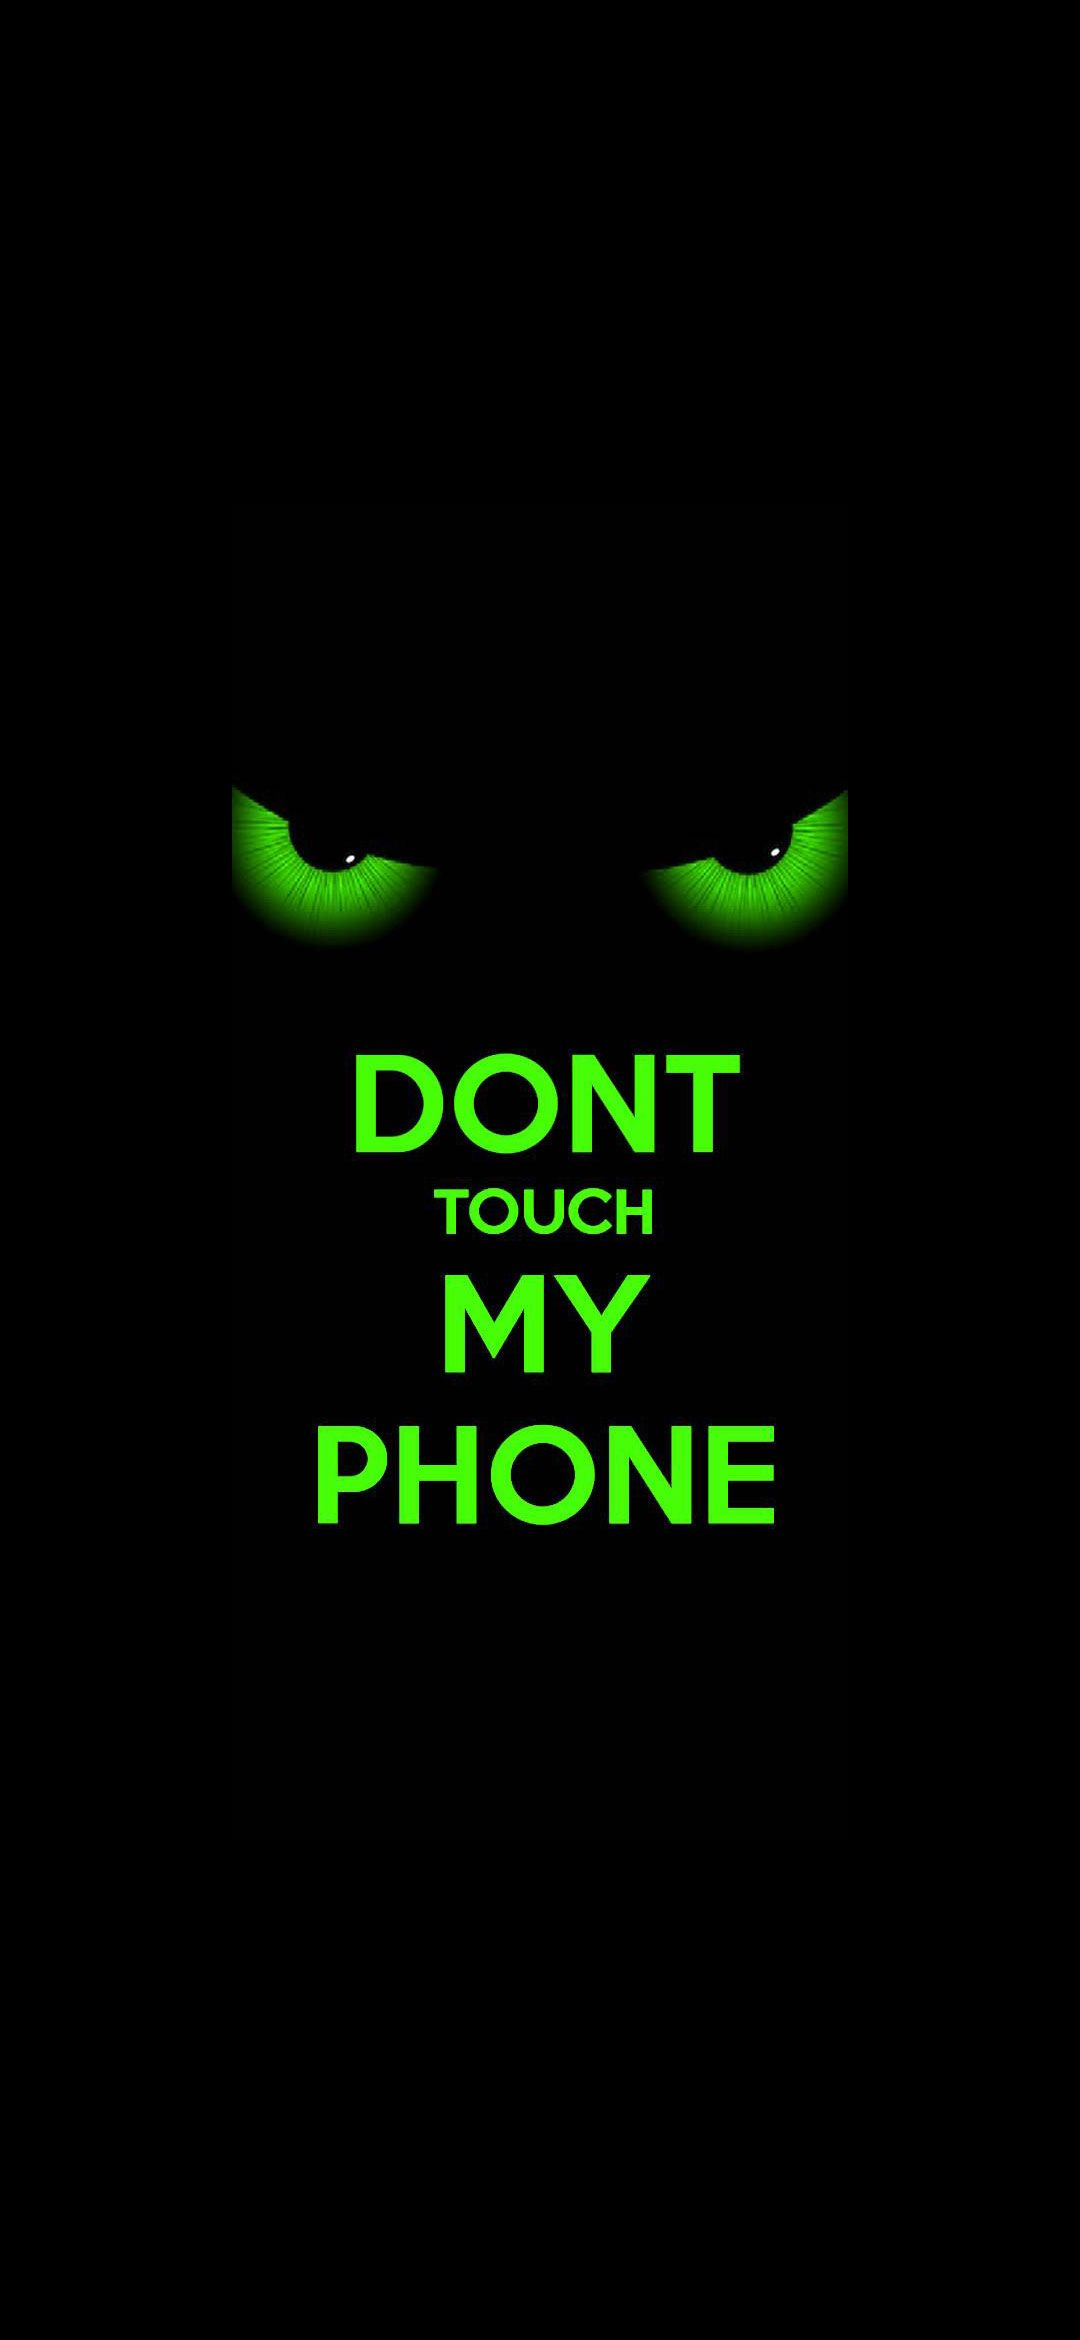 Dont Touch Scary Lock Screen Wallpaper 1080x2340 In 2020 Lock Screen Wallpaper Android Lock Screen Wallpaper Hd Funny Lock Screen Wallpaper